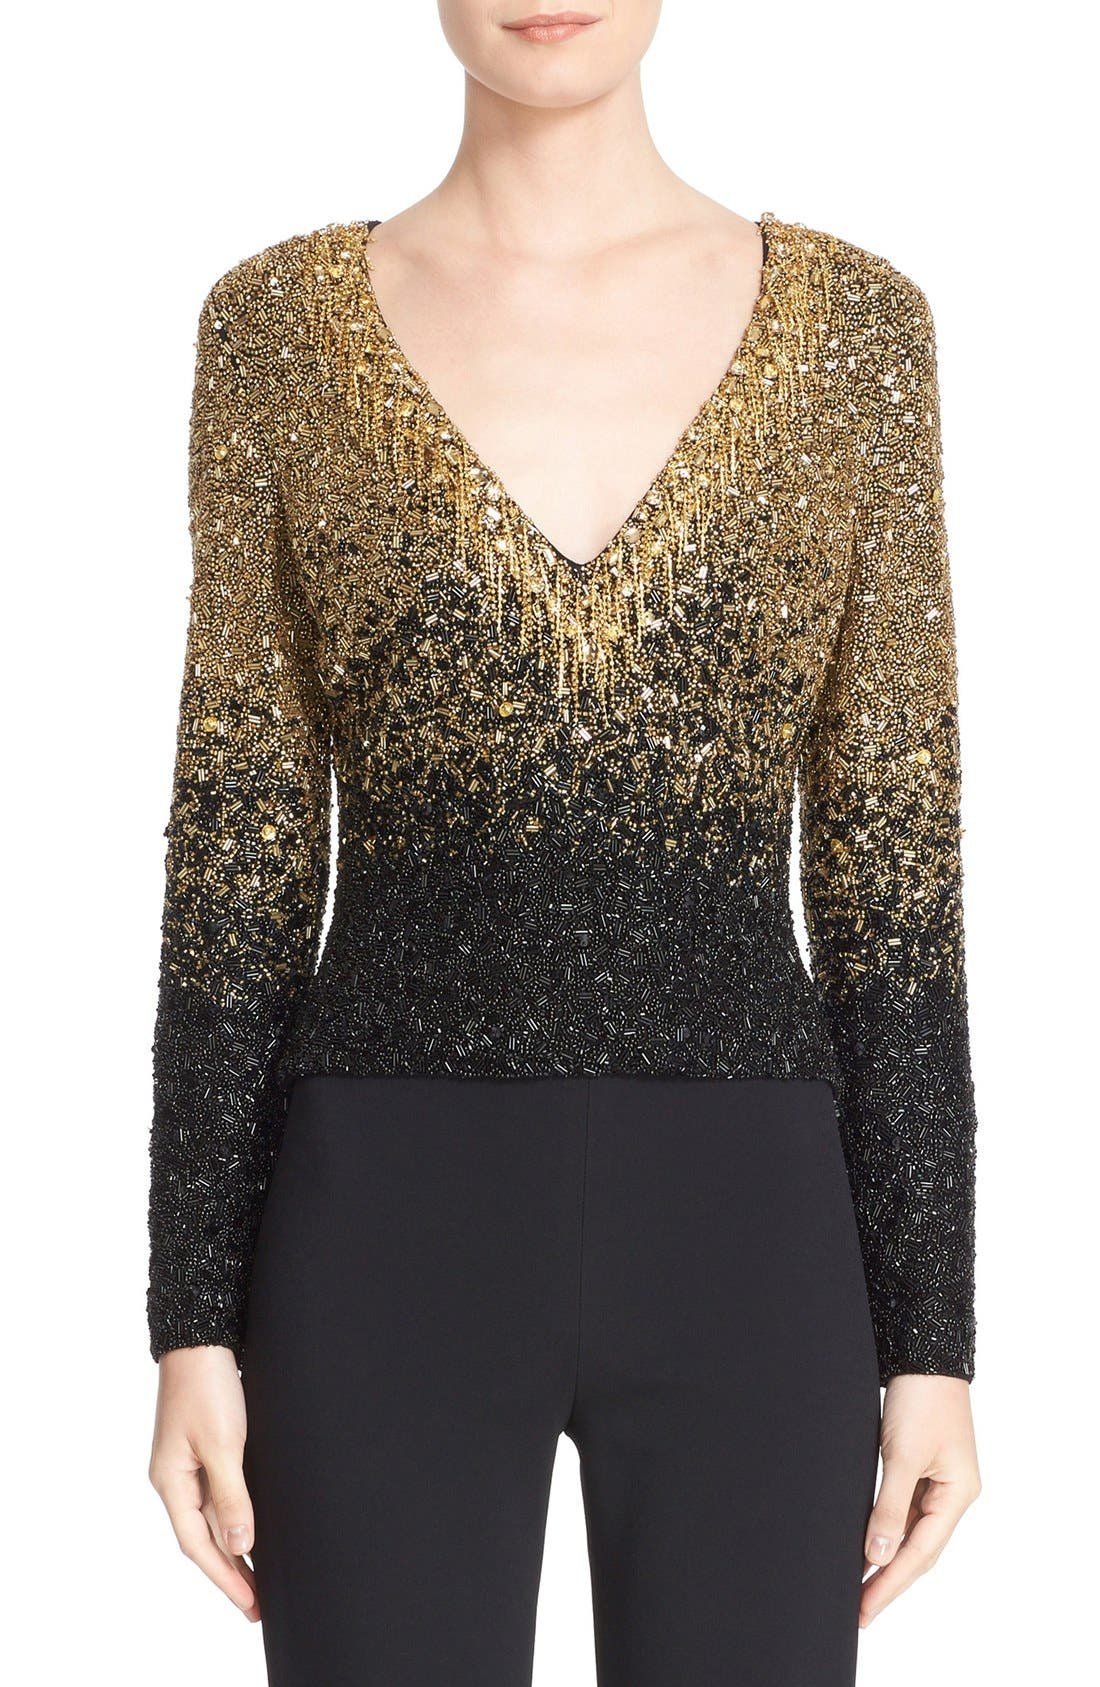 BADGLEY MISCHKA COUTURE. Badgley Mischka Couture Beaded V-Neck